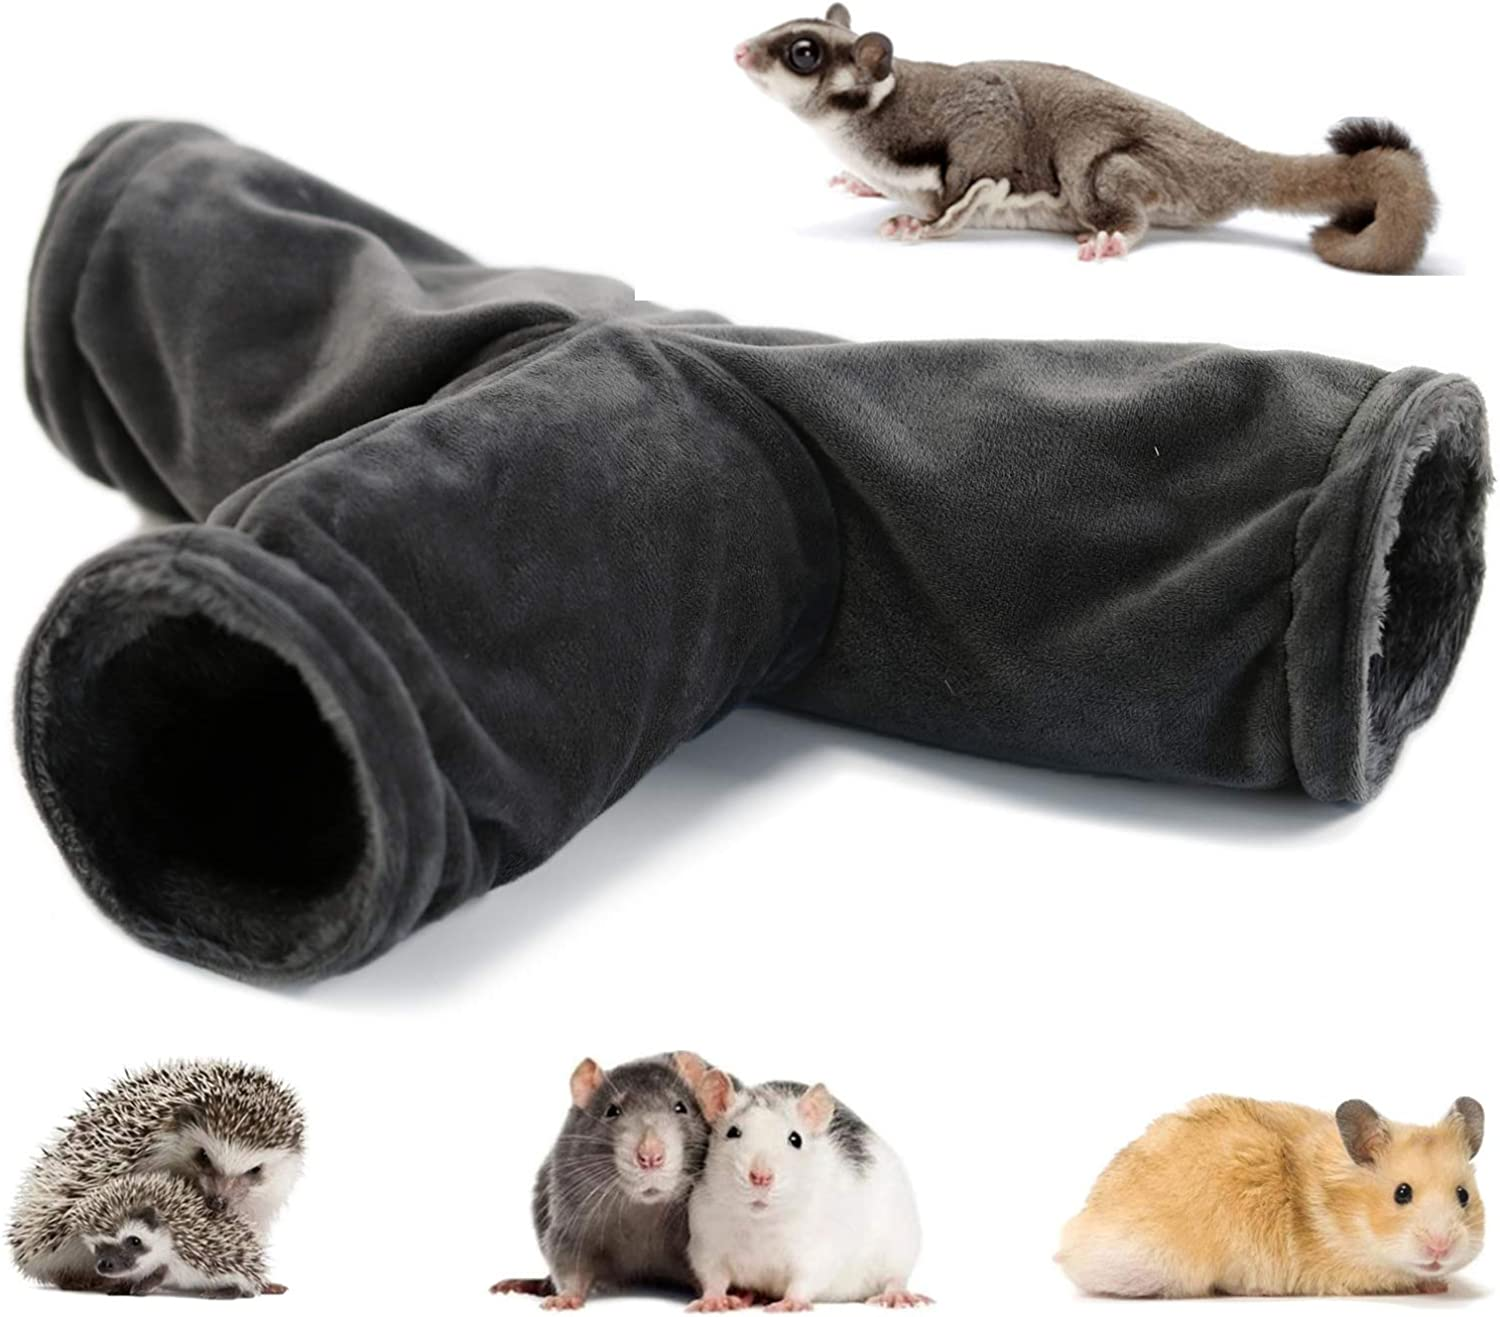 LeerKing Small Pet Play Tunnel Collapsible 3 Way Rats Toys Cage Accessories for Hamster Chinchillas Mice Rats